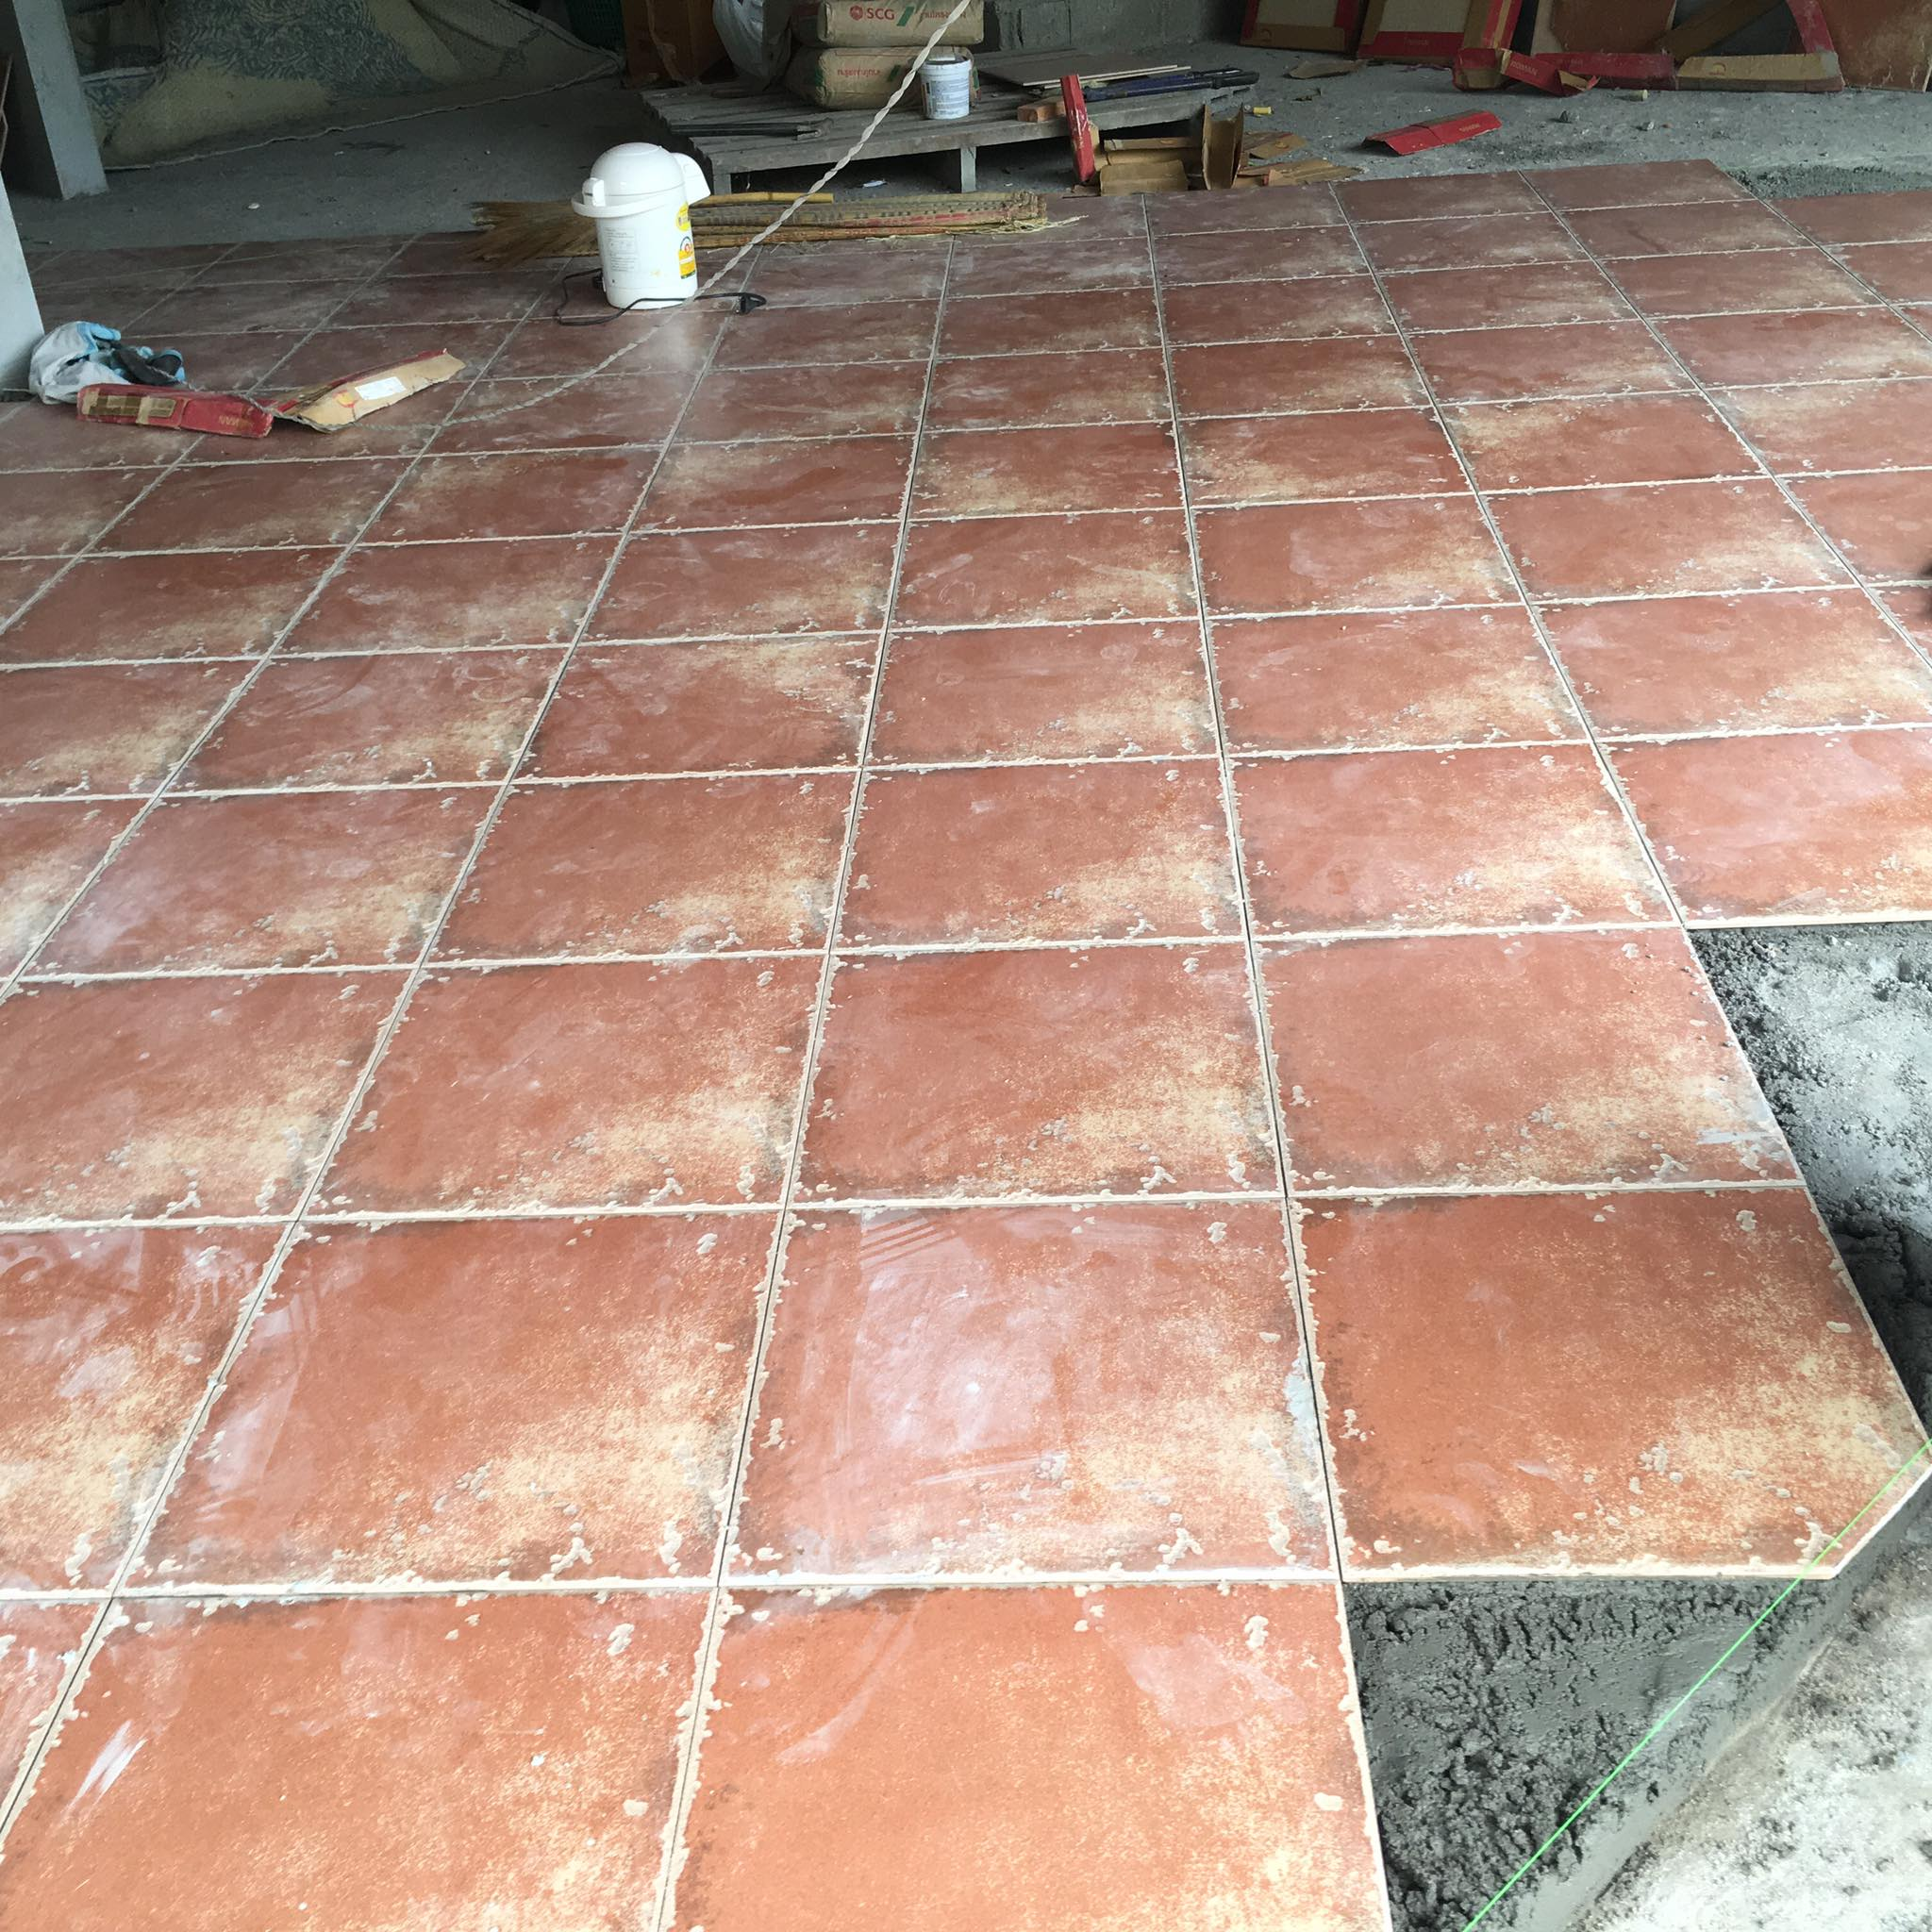 27 May - 1st Level Floor Tiles